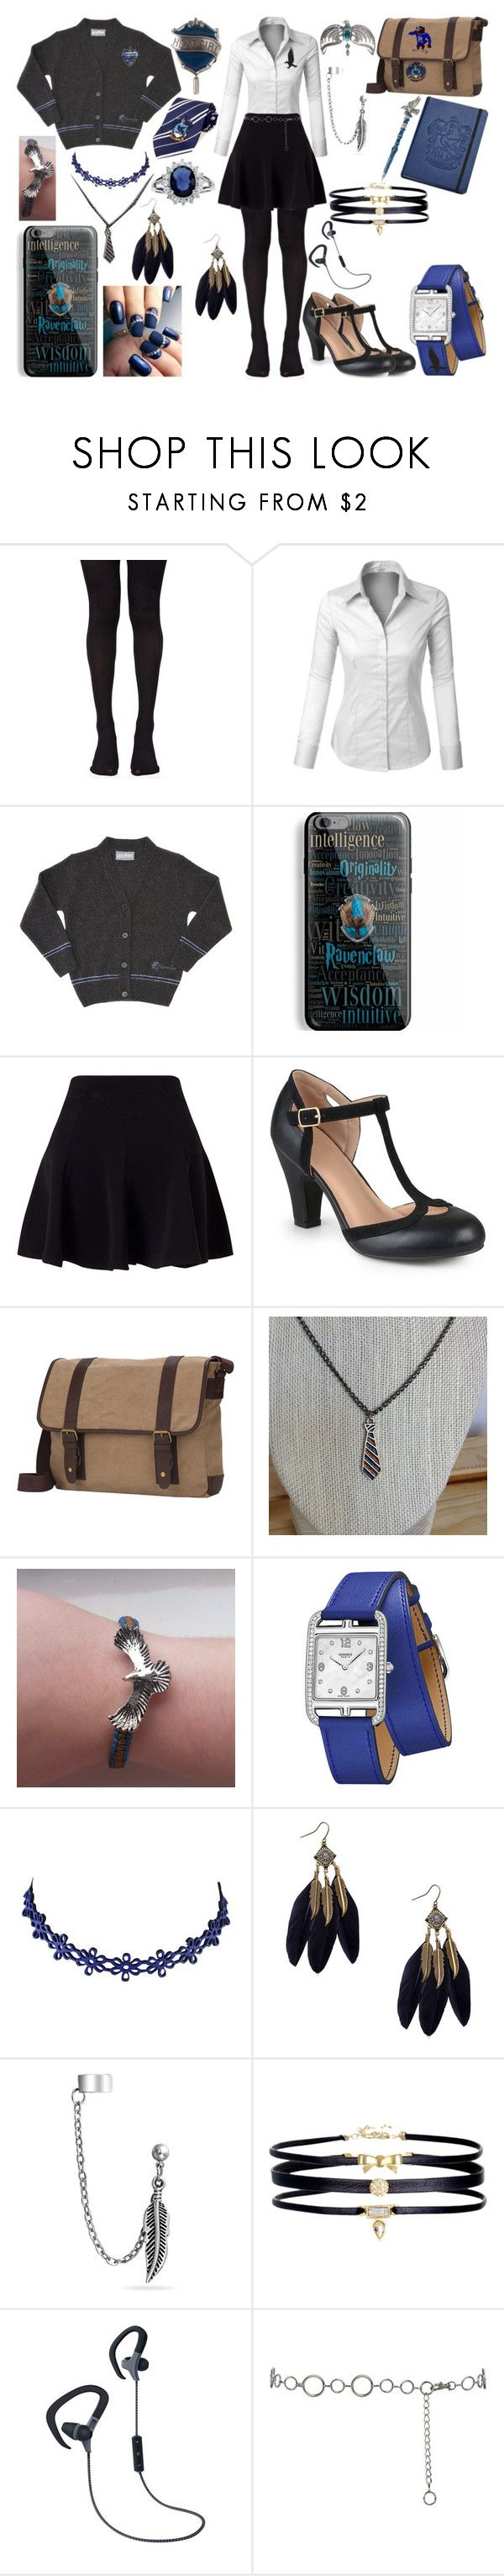 """""""Ravenclaw"""" by vampirekitty34 ❤ liked on Polyvore featuring Music Legs, LE3NO, CO, Samsung, Miss Selfridge, Journee Collection, Goodhope Bags, Hermès, Bling Jewelry and Merkury"""